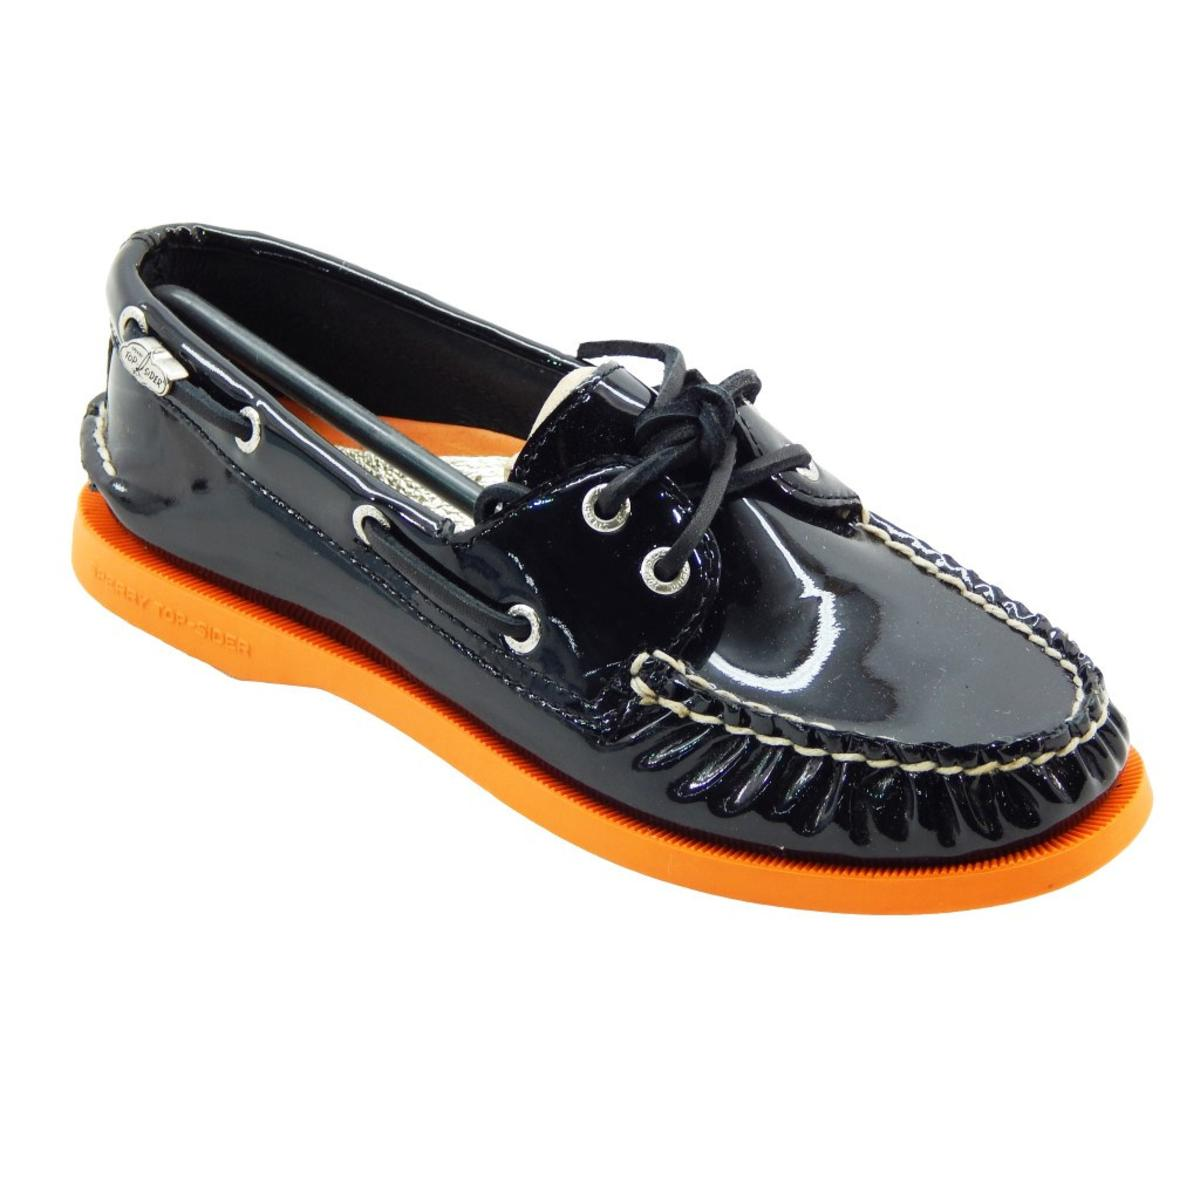 Sperry Top-Sider Women's Princeton Black Patent Orange Boat Shoe by Sperry Top-Sider